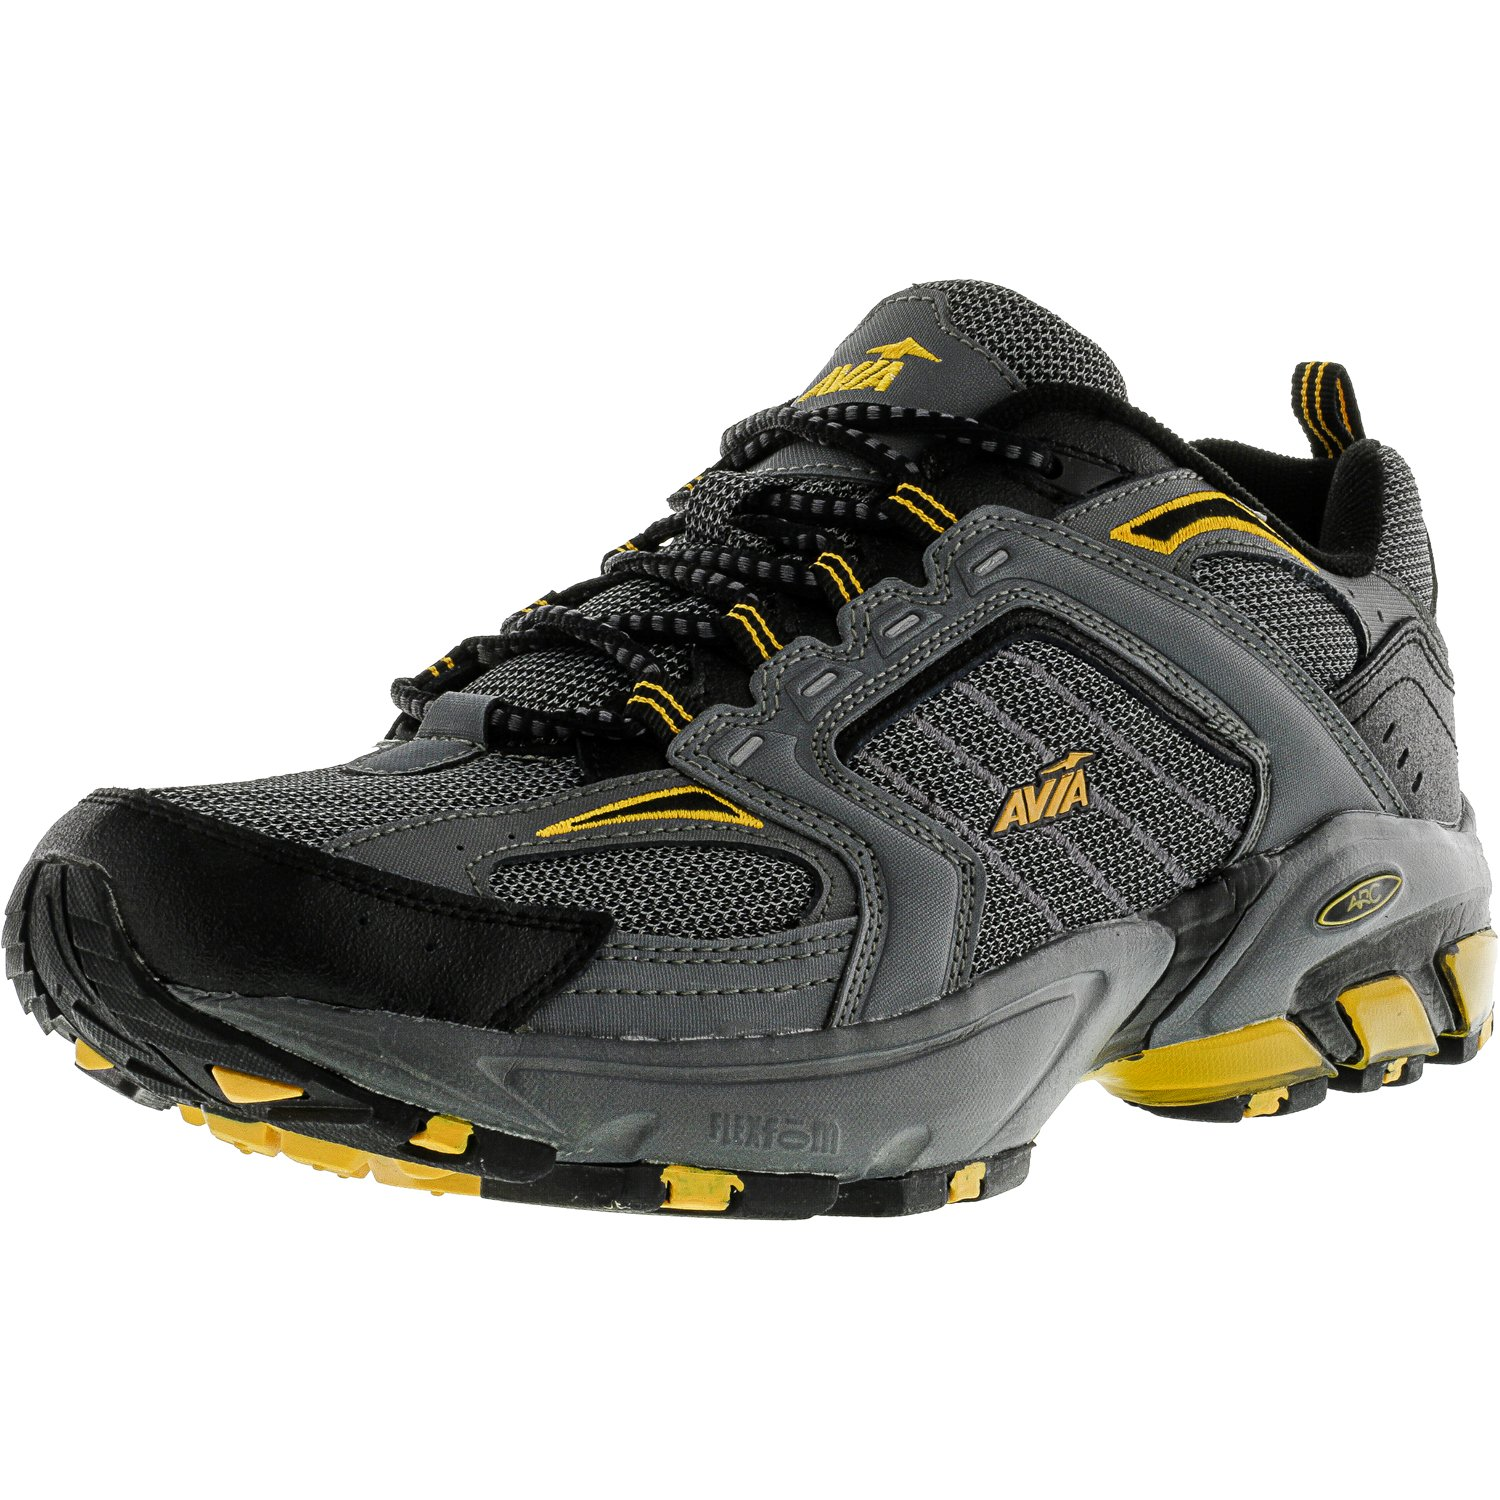 a5e9f9af4990 Avia A6028 Men s Gray Black Yellow Athletic Hiker Sneakers Shoes